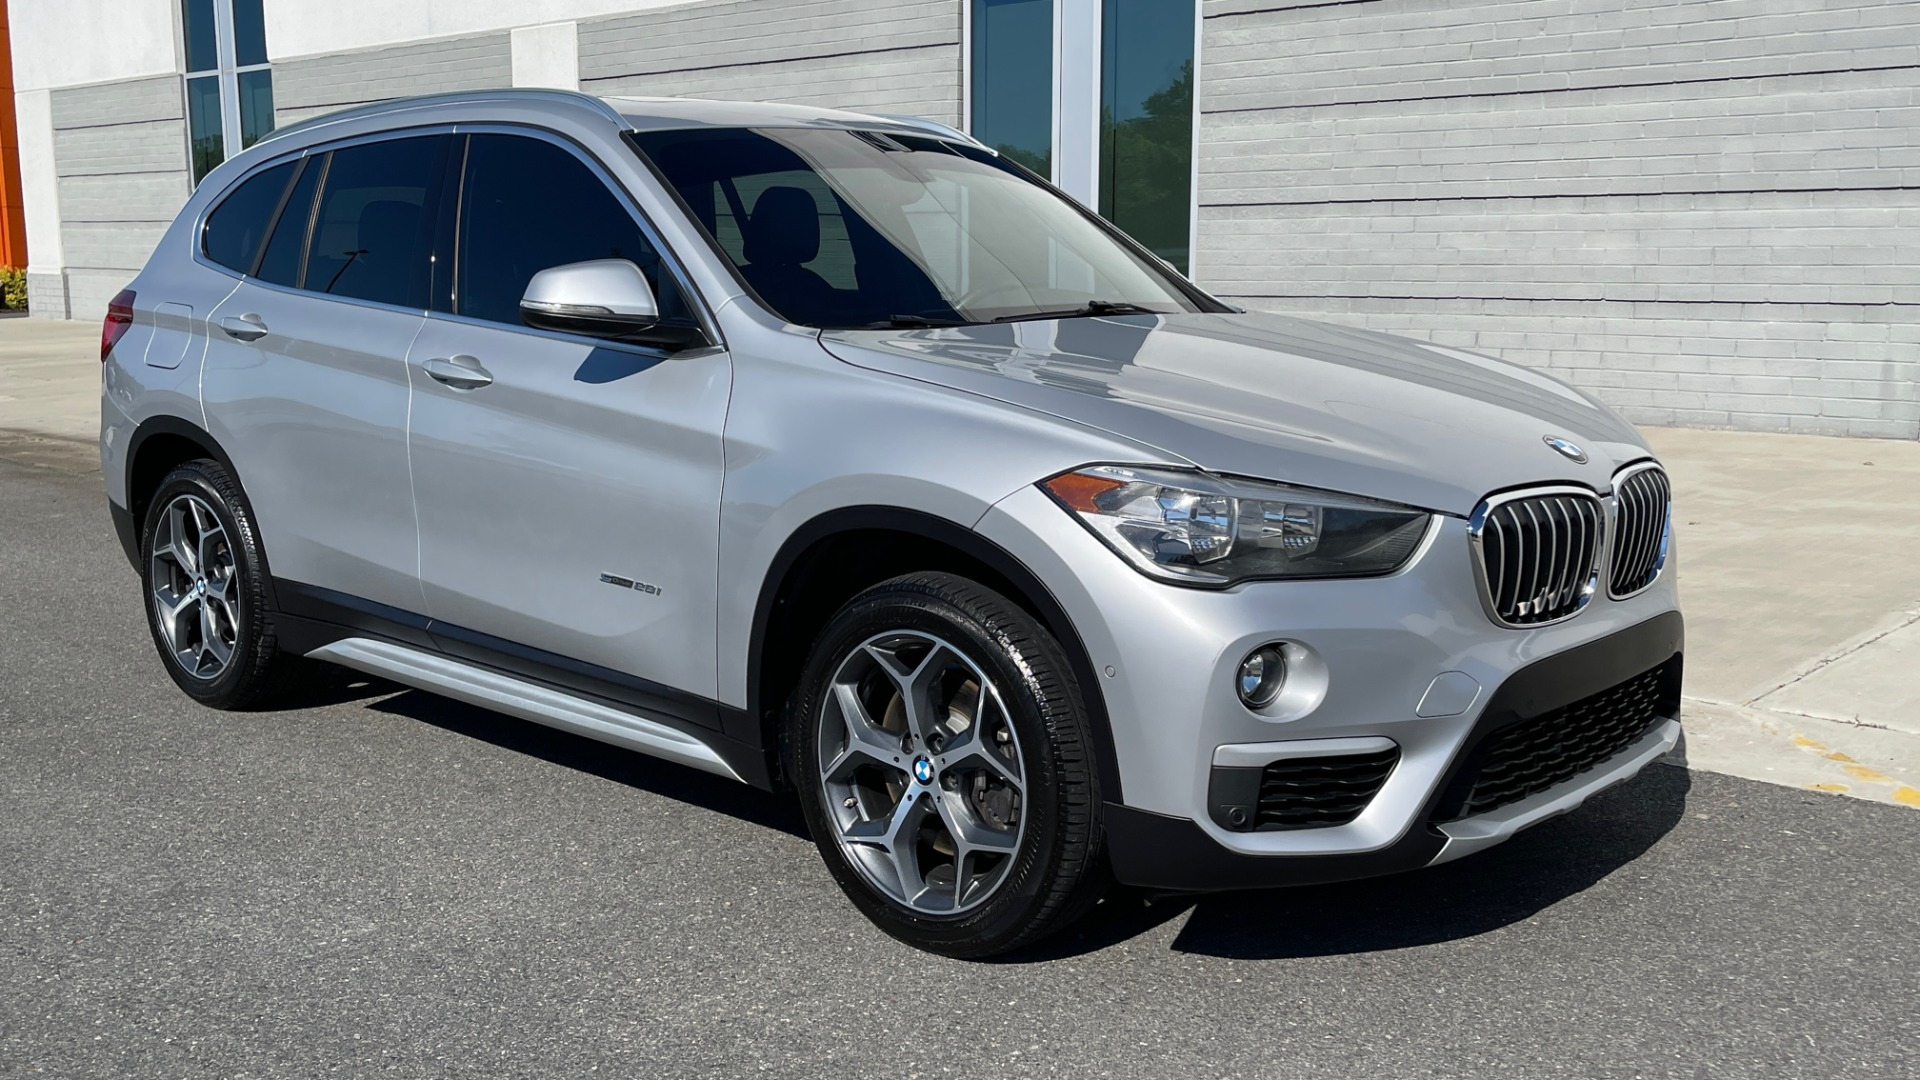 Used 2017 BMW X1 SDRIVE28I 2.0L / 8-SPD AUTO / DRIVER ASST / PANO-ROOF / REARVIEW for sale $26,995 at Formula Imports in Charlotte NC 28227 6